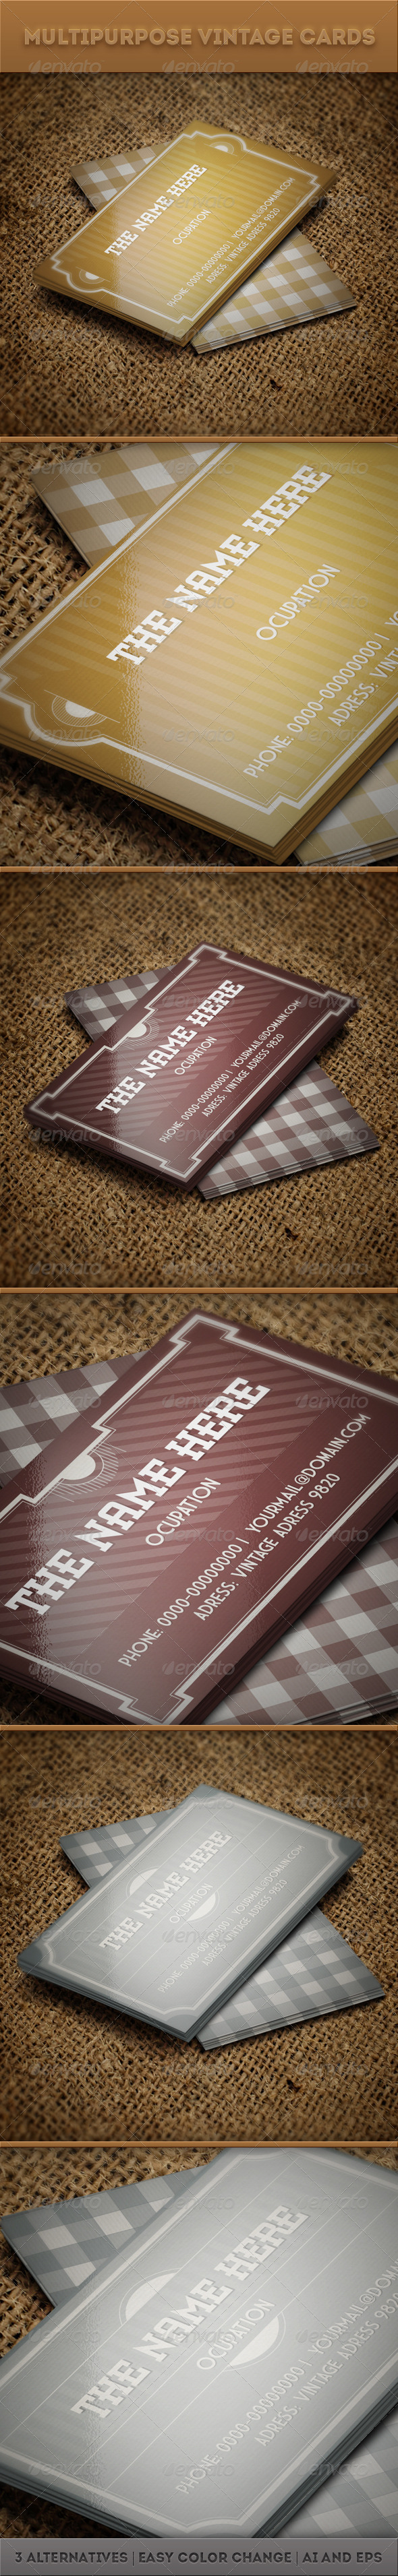 Multipurpose Vintage Cards - Retro/Vintage Business Cards